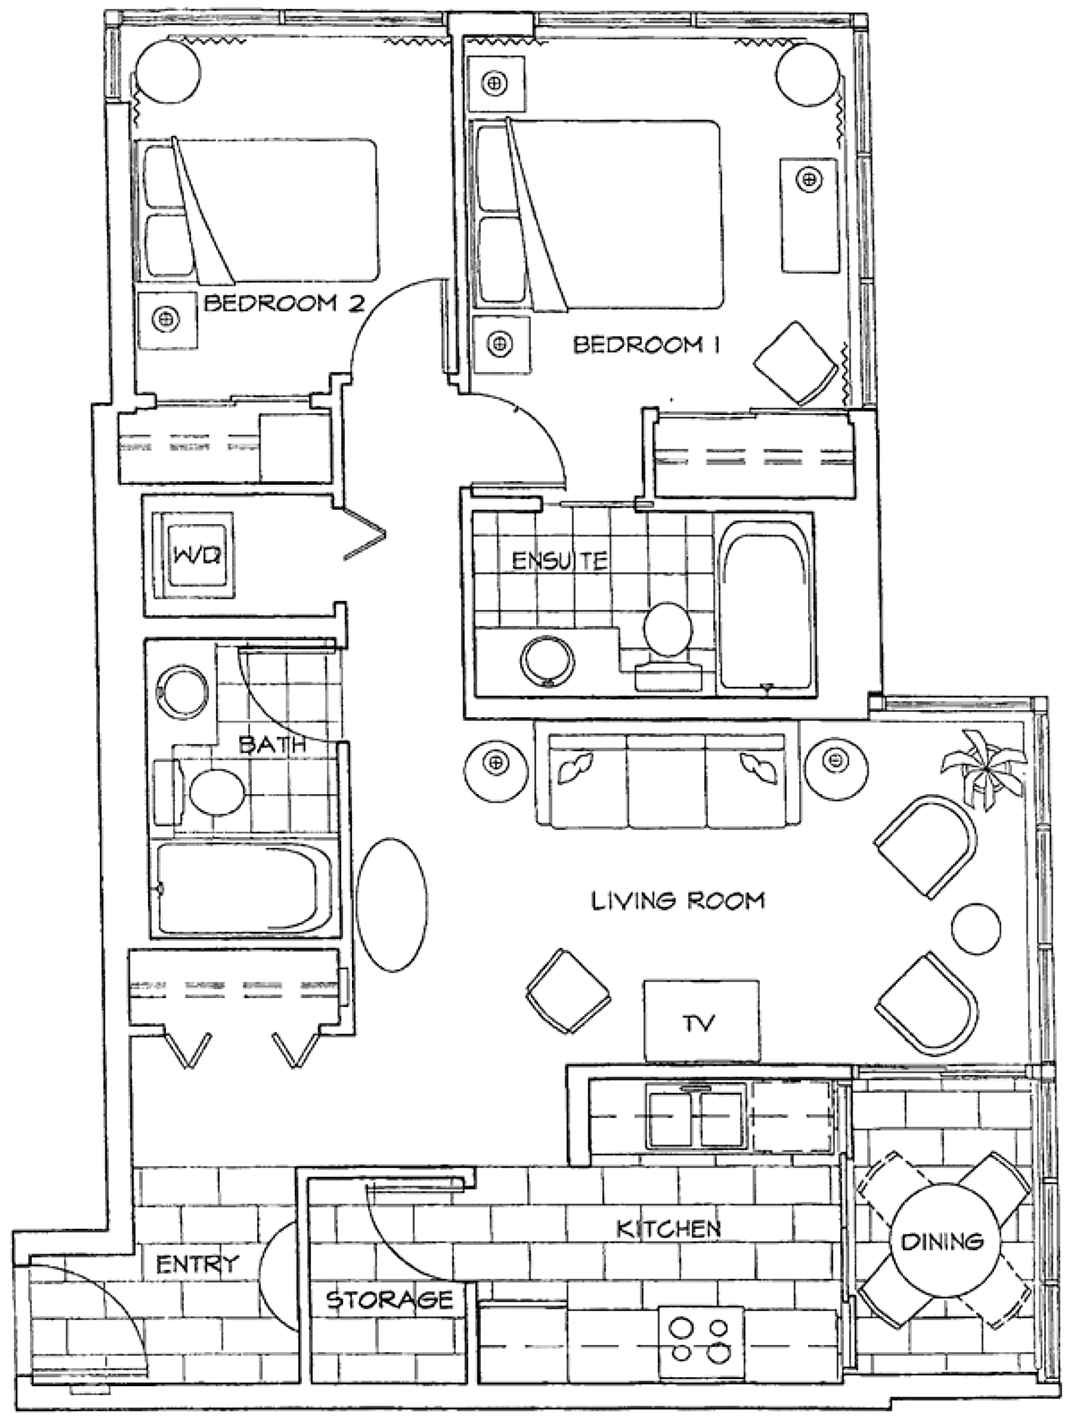 Floor Plan of Two Bedroom Apartment at The Residences on Georgia